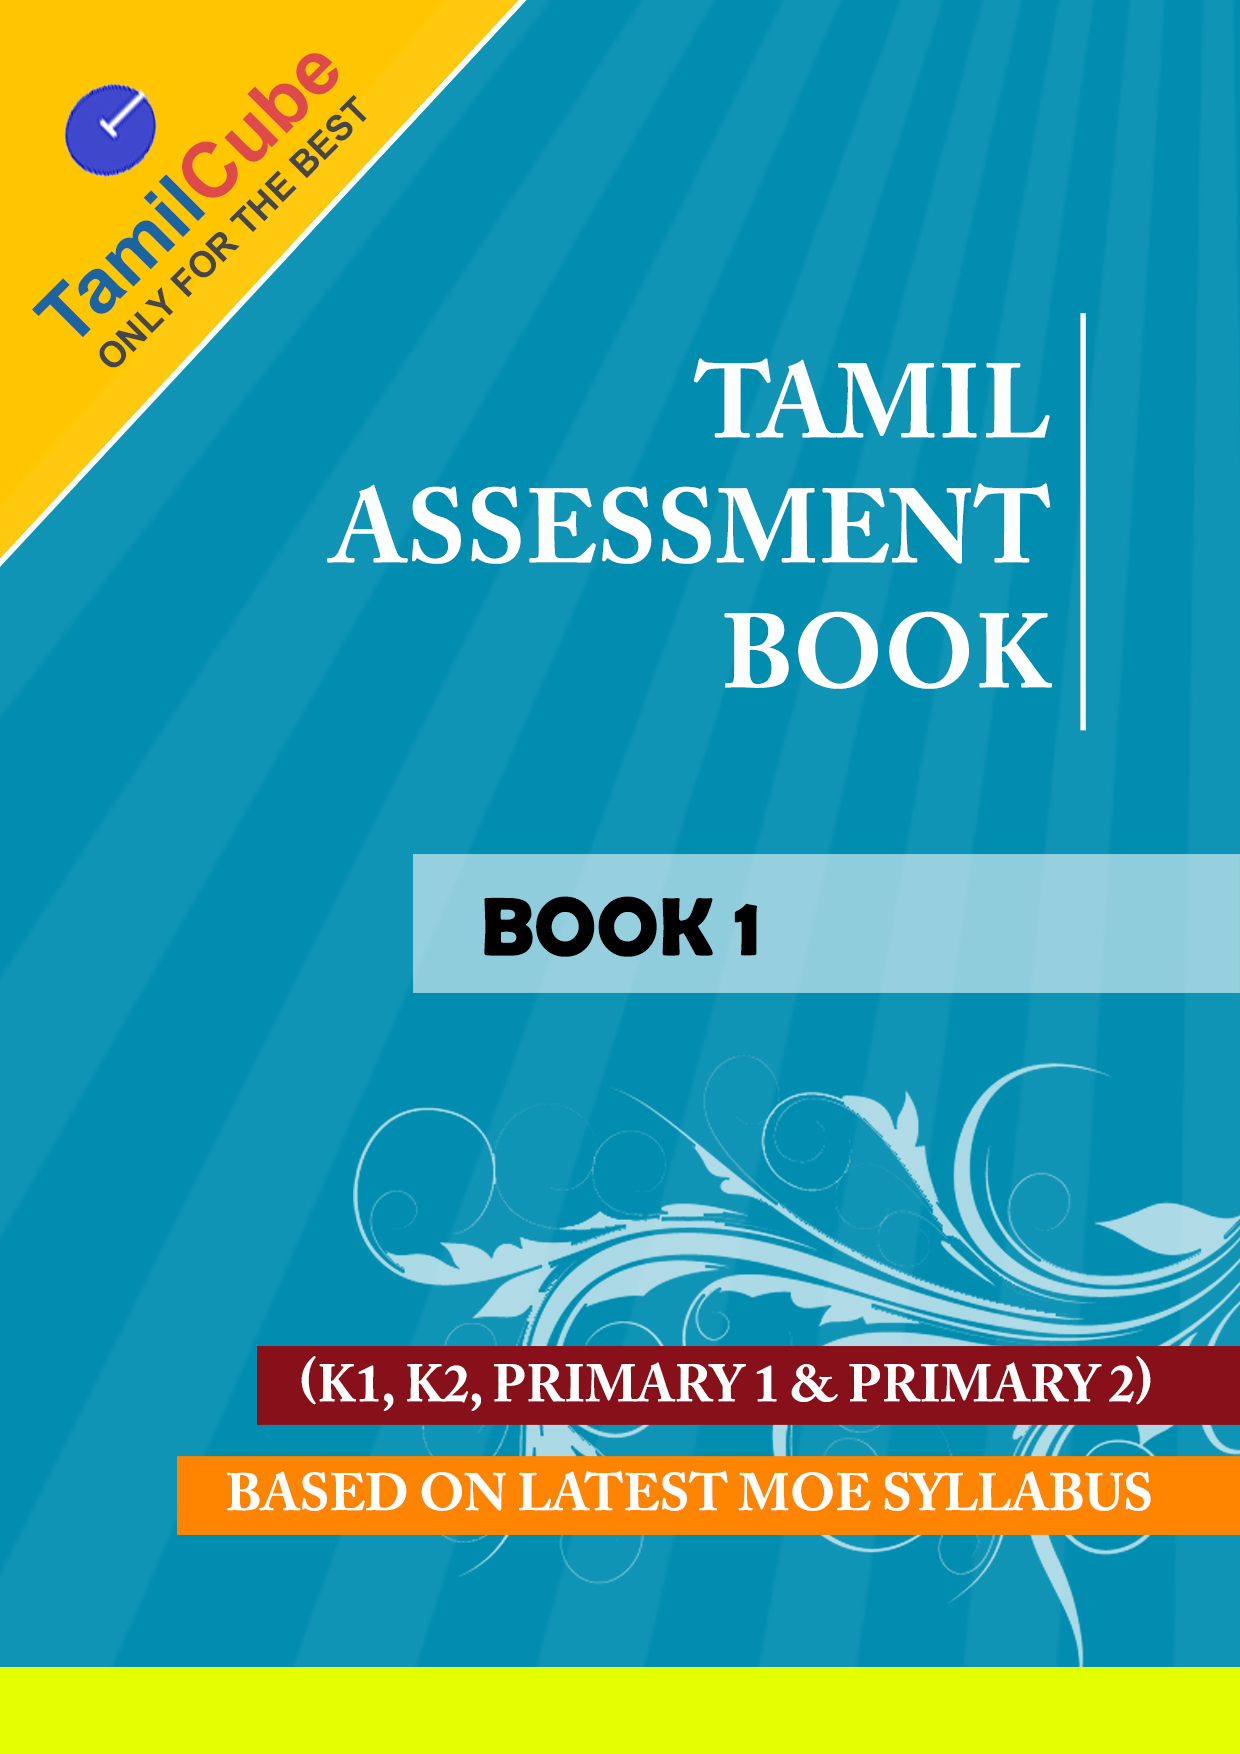 Kindergarten Tamil Worksheets - Level One (Tamilcube) | Tamilcube Shop